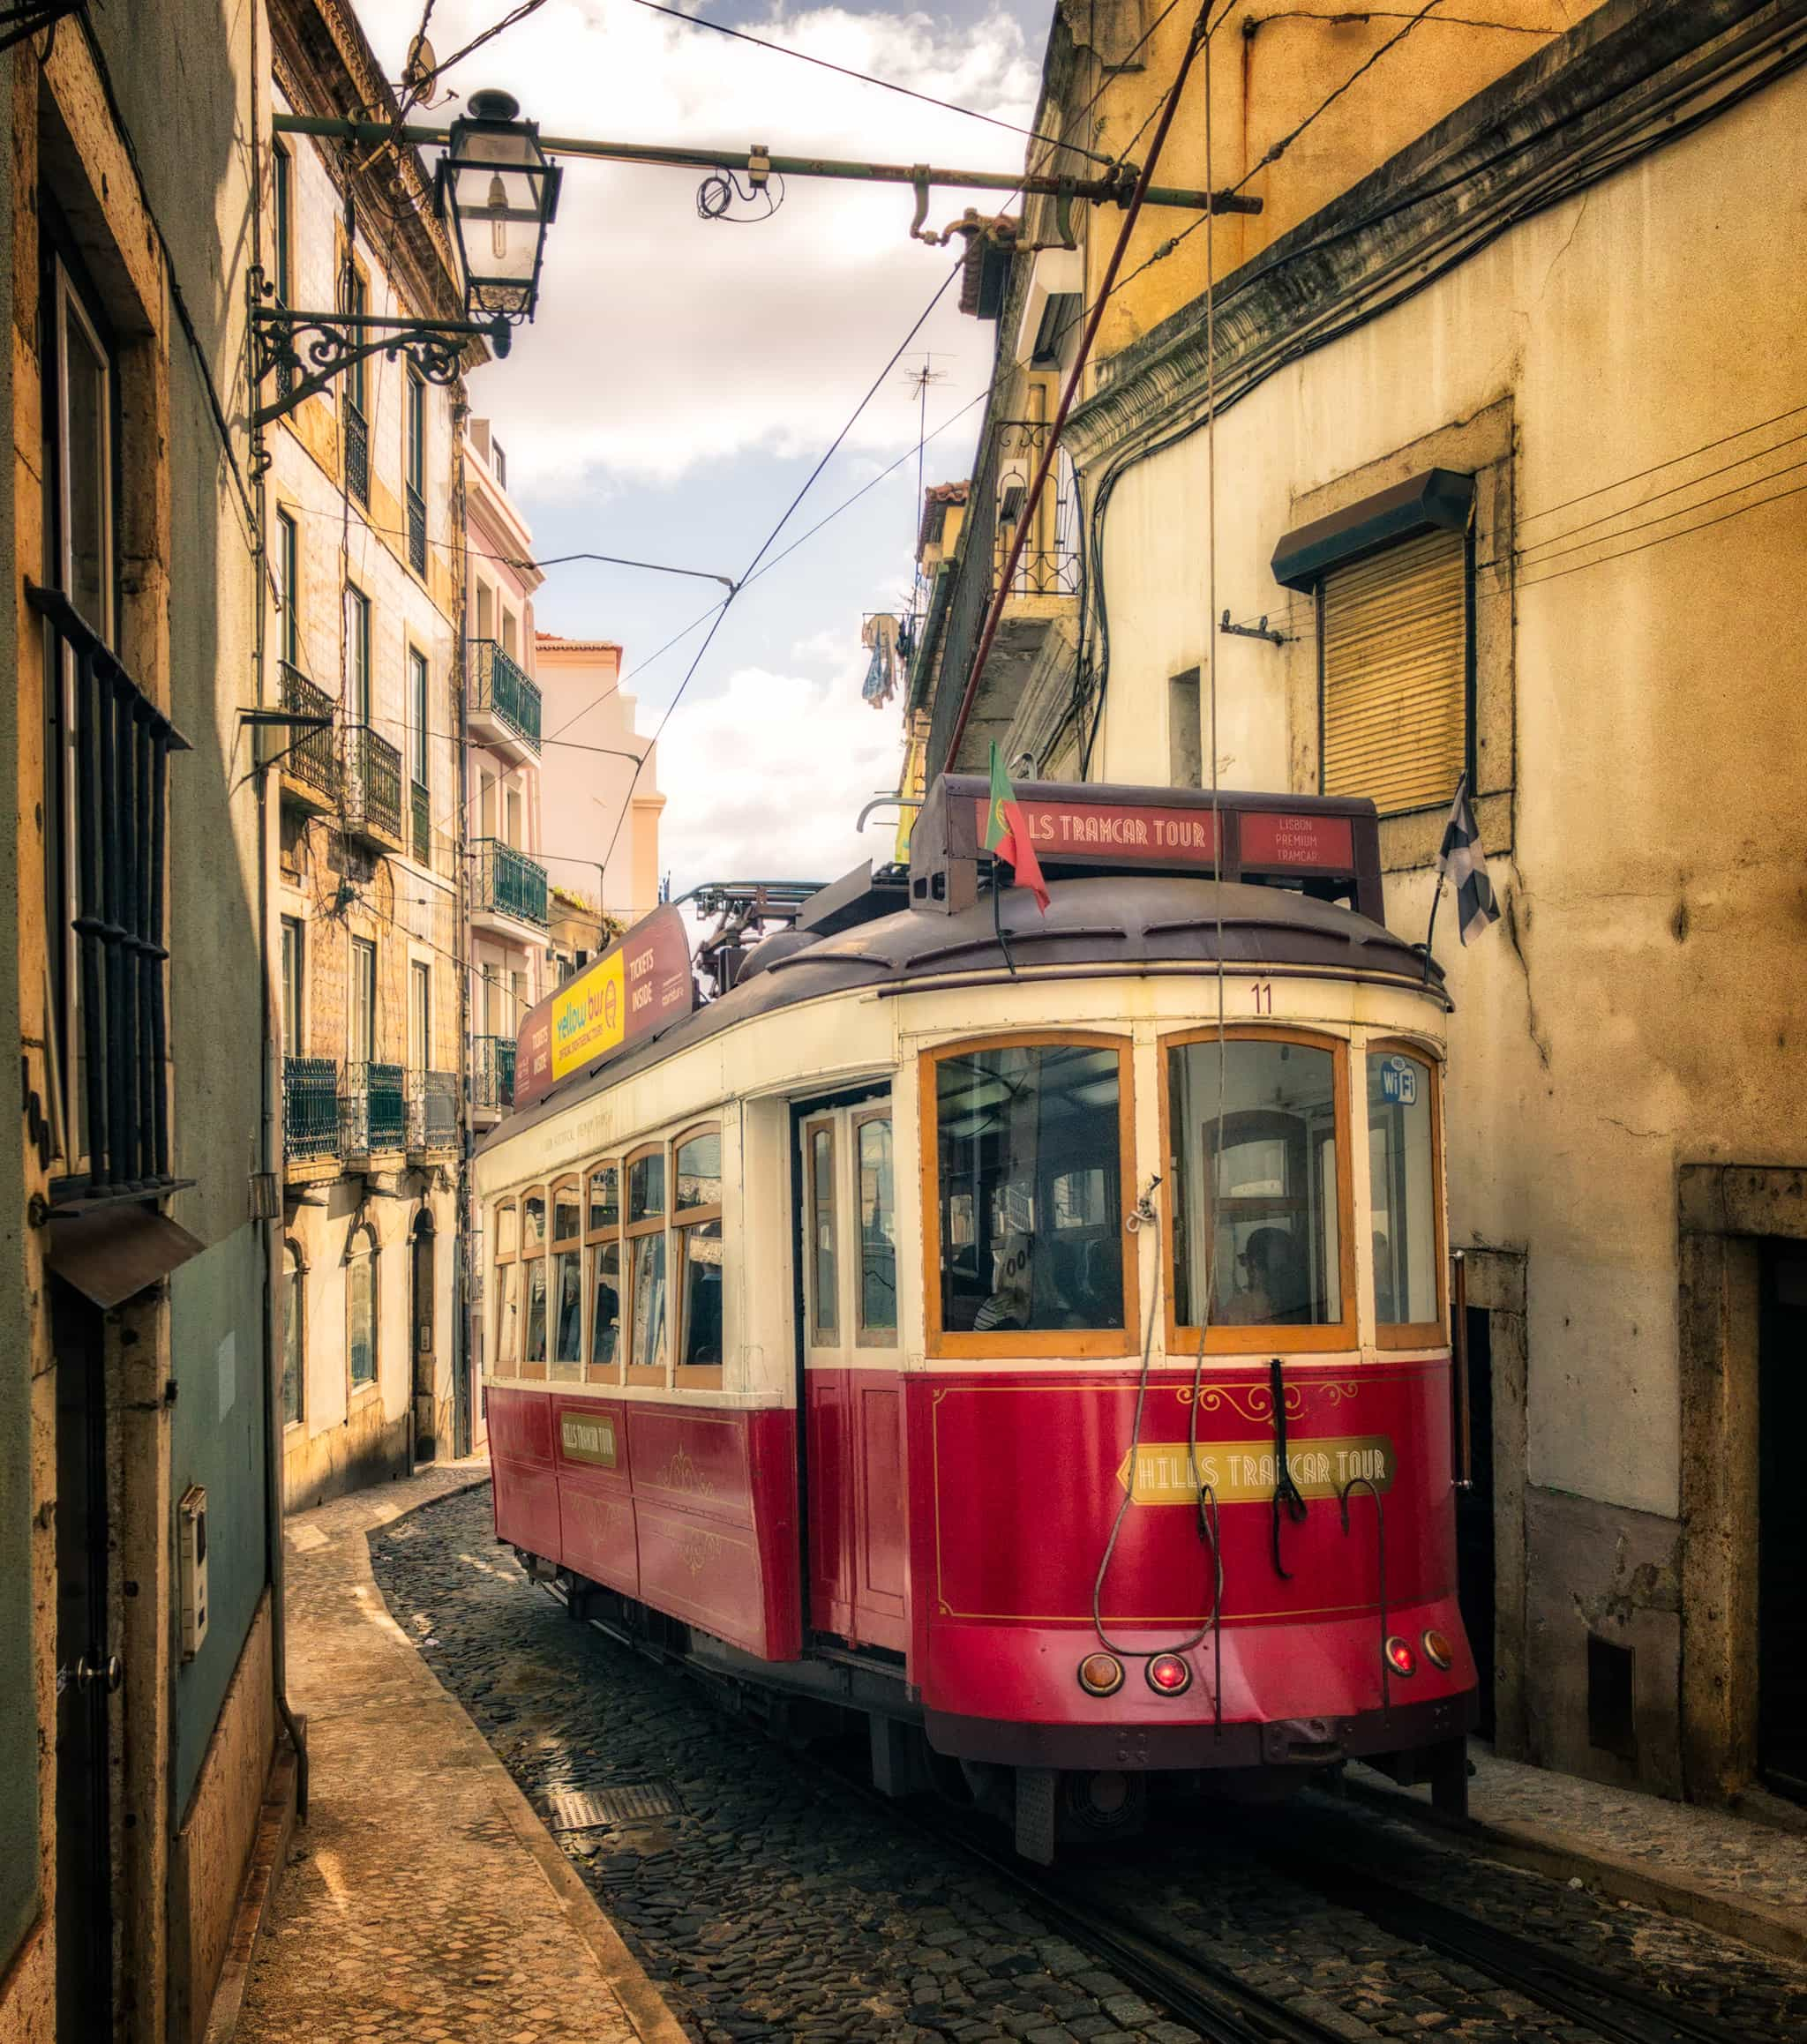 Historical Lisbon tram in Alfama, Portugal.